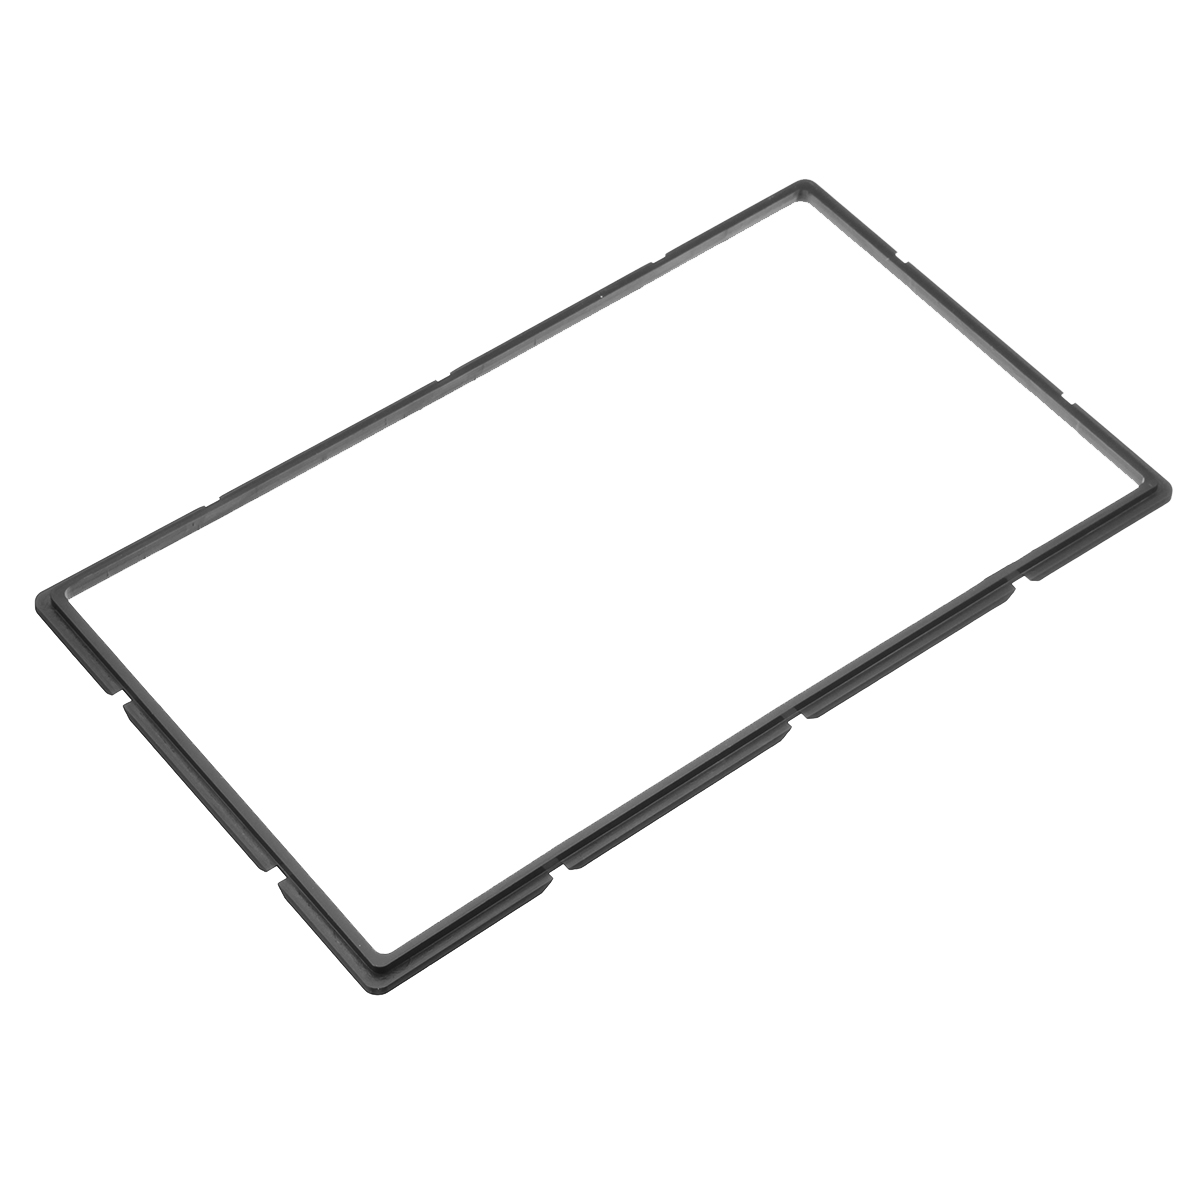 2 din car radio stereo fascia panel plate frame for toyota